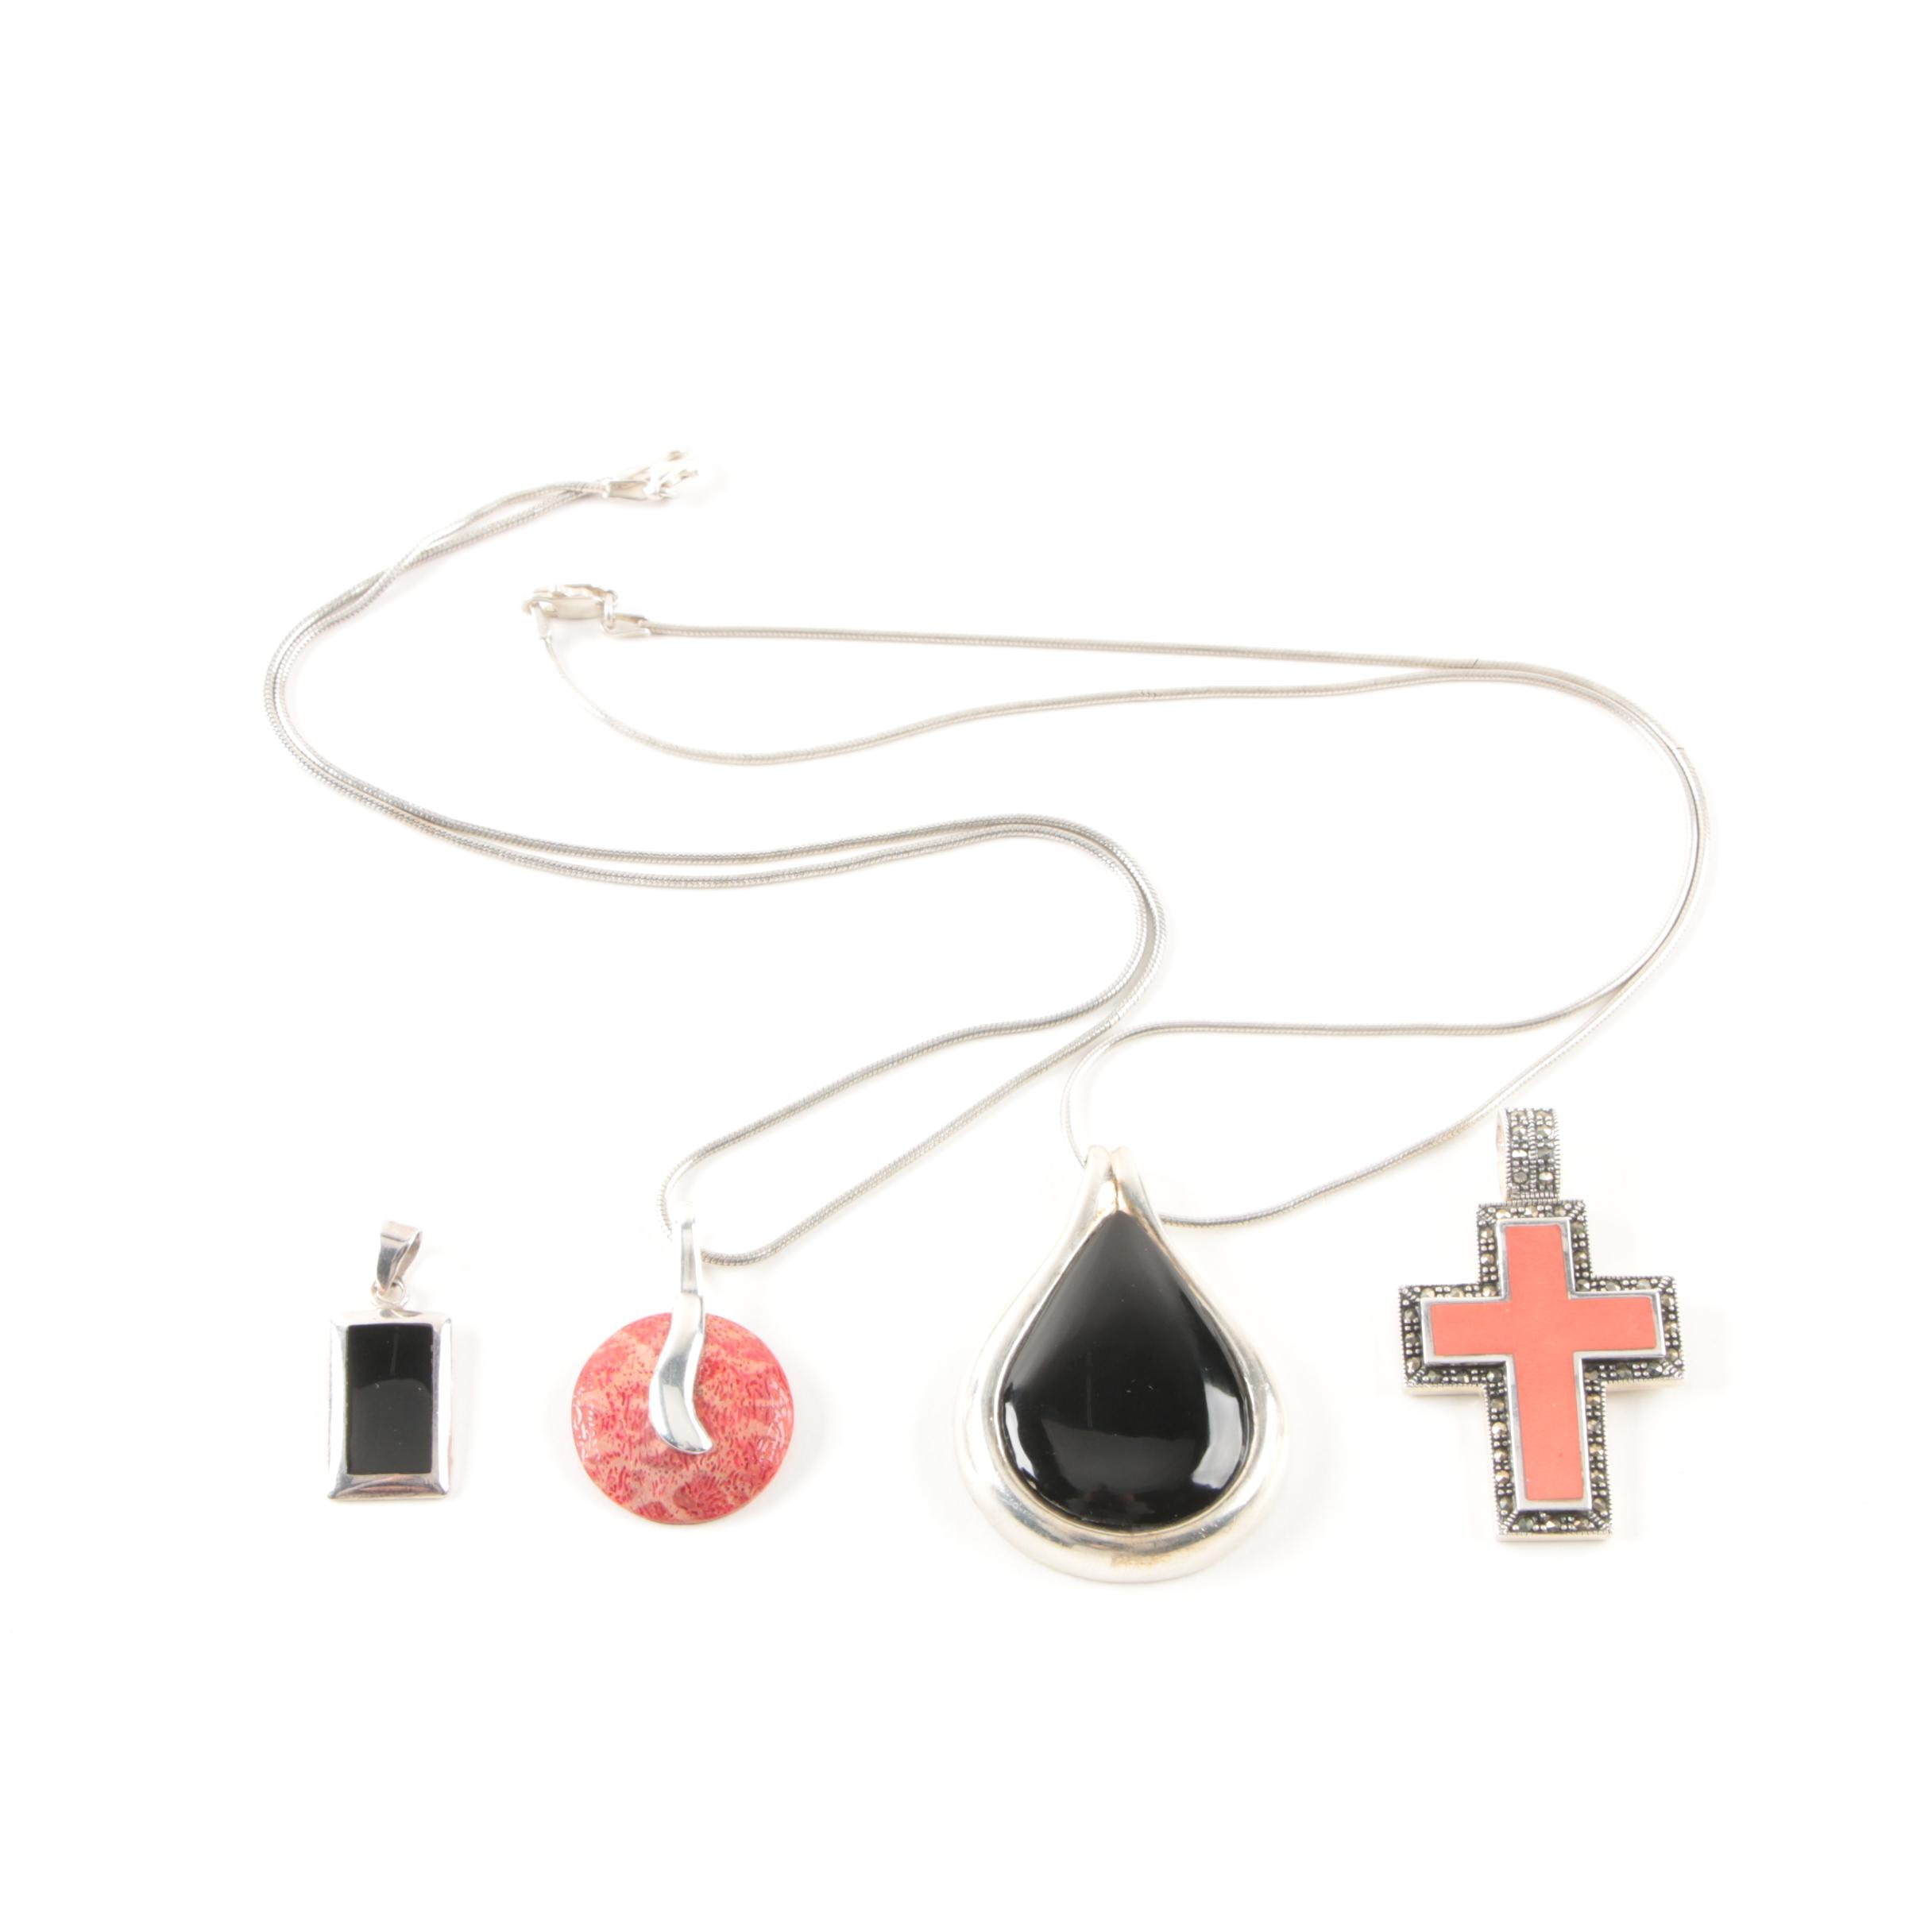 Sterling Silver and Gemstone Necklaces and Pendants